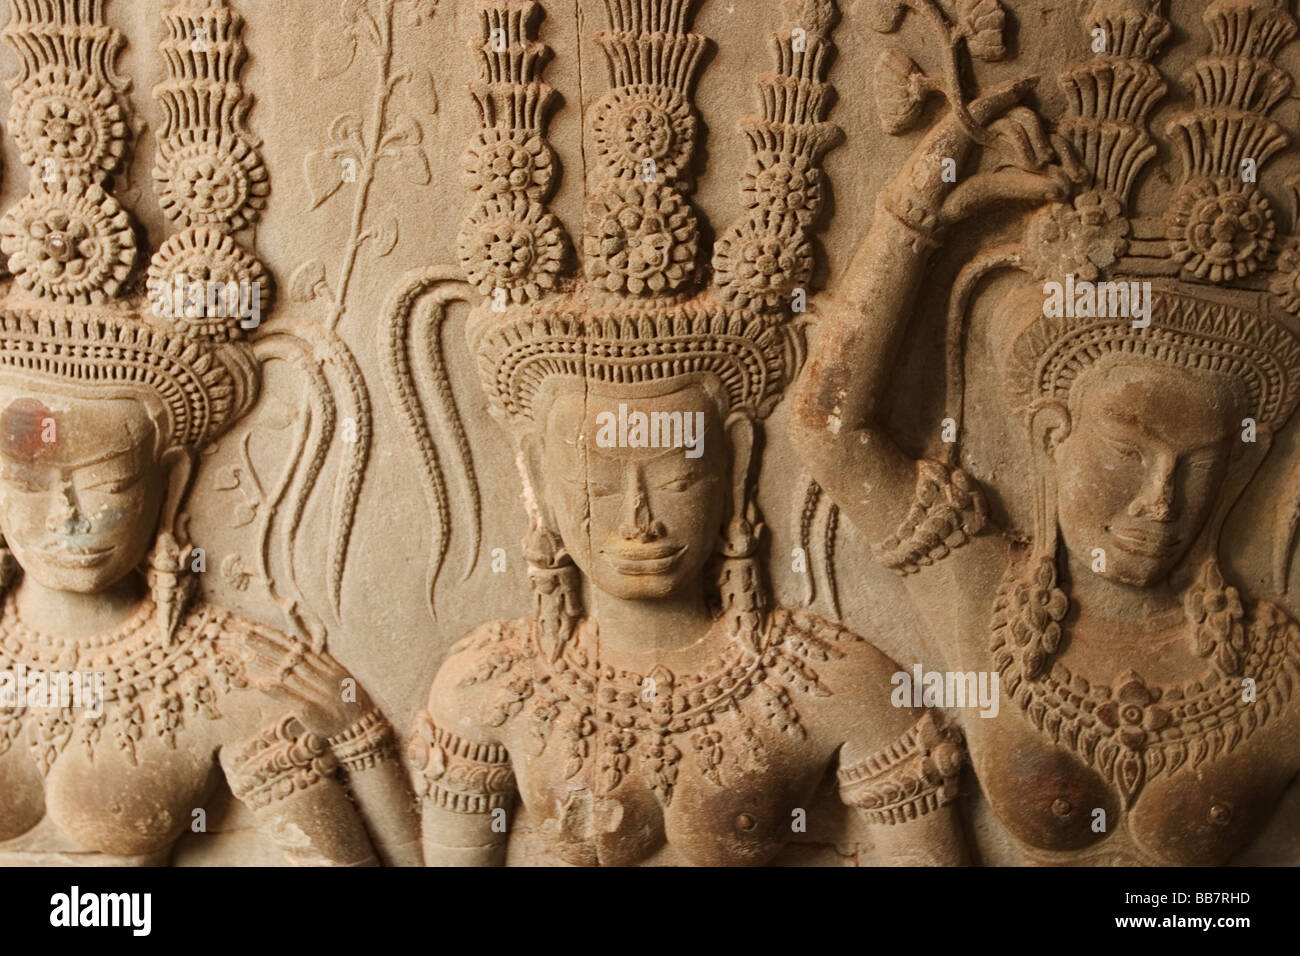 Devatas or asparas, celestial dancing girls, adorn the walls of Angkor Wat, Siem Reap Province, Kingdom of Cambodia. - Stock Image